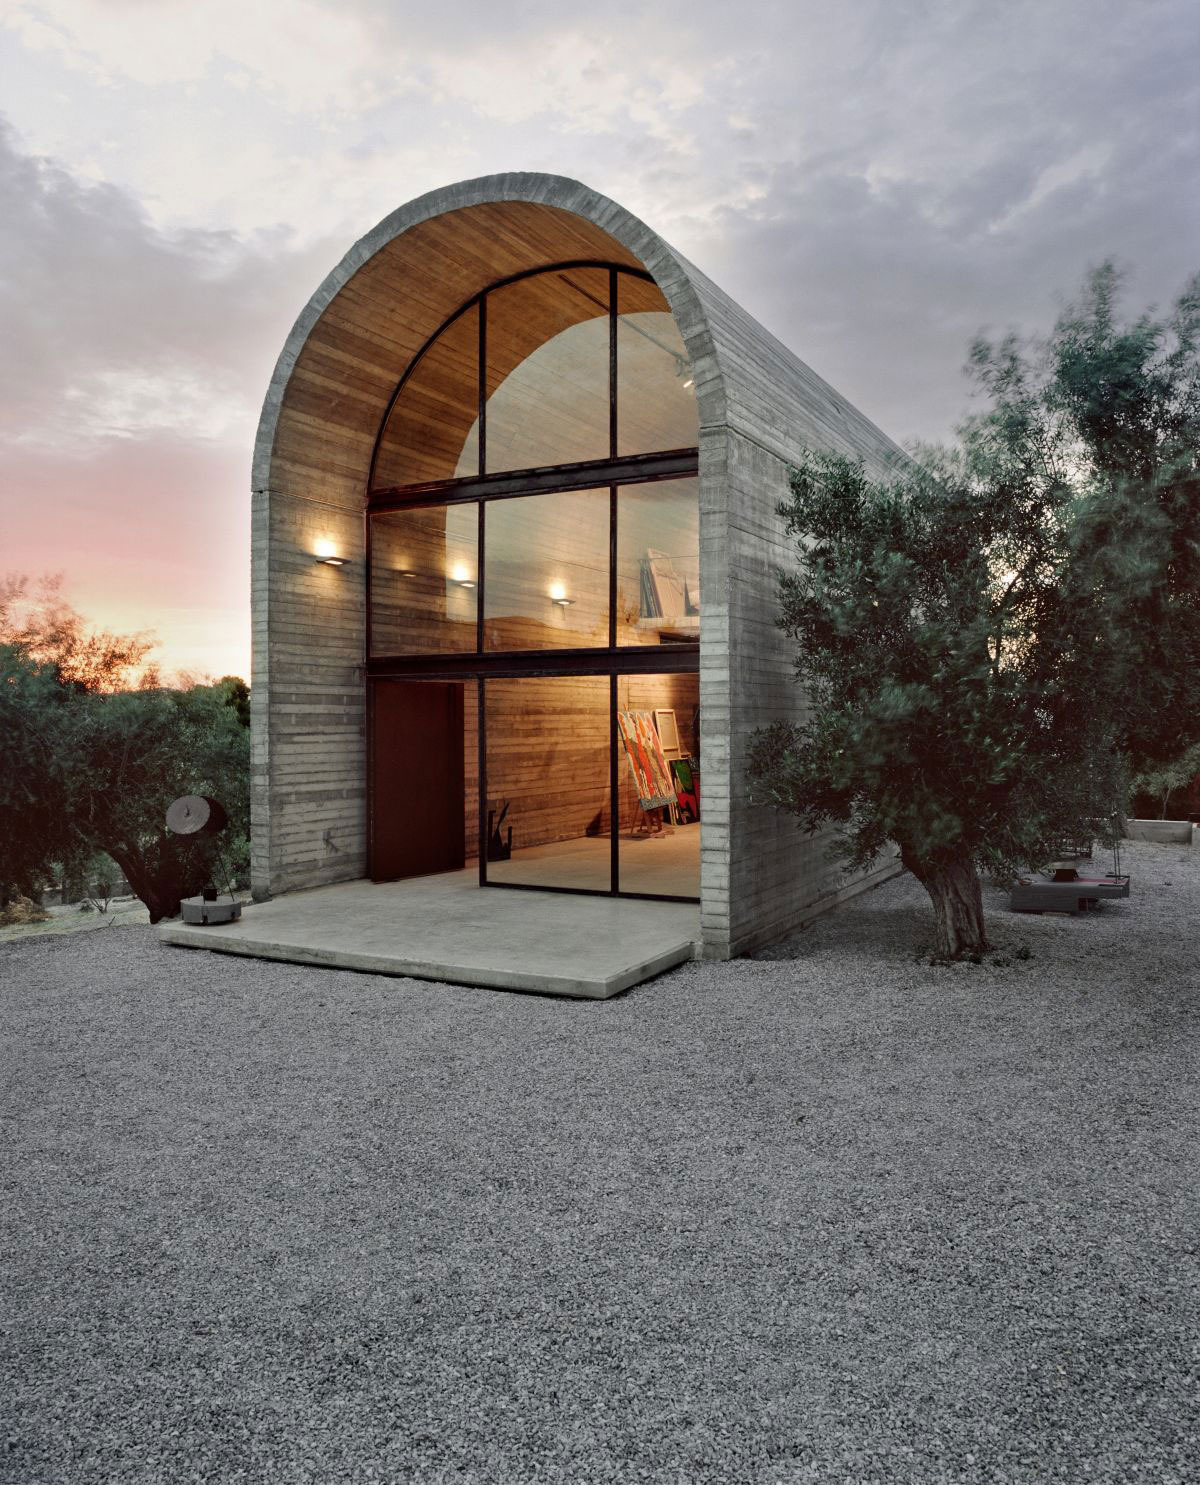 art warehouse, boeotia, greece, by a31 architecture.